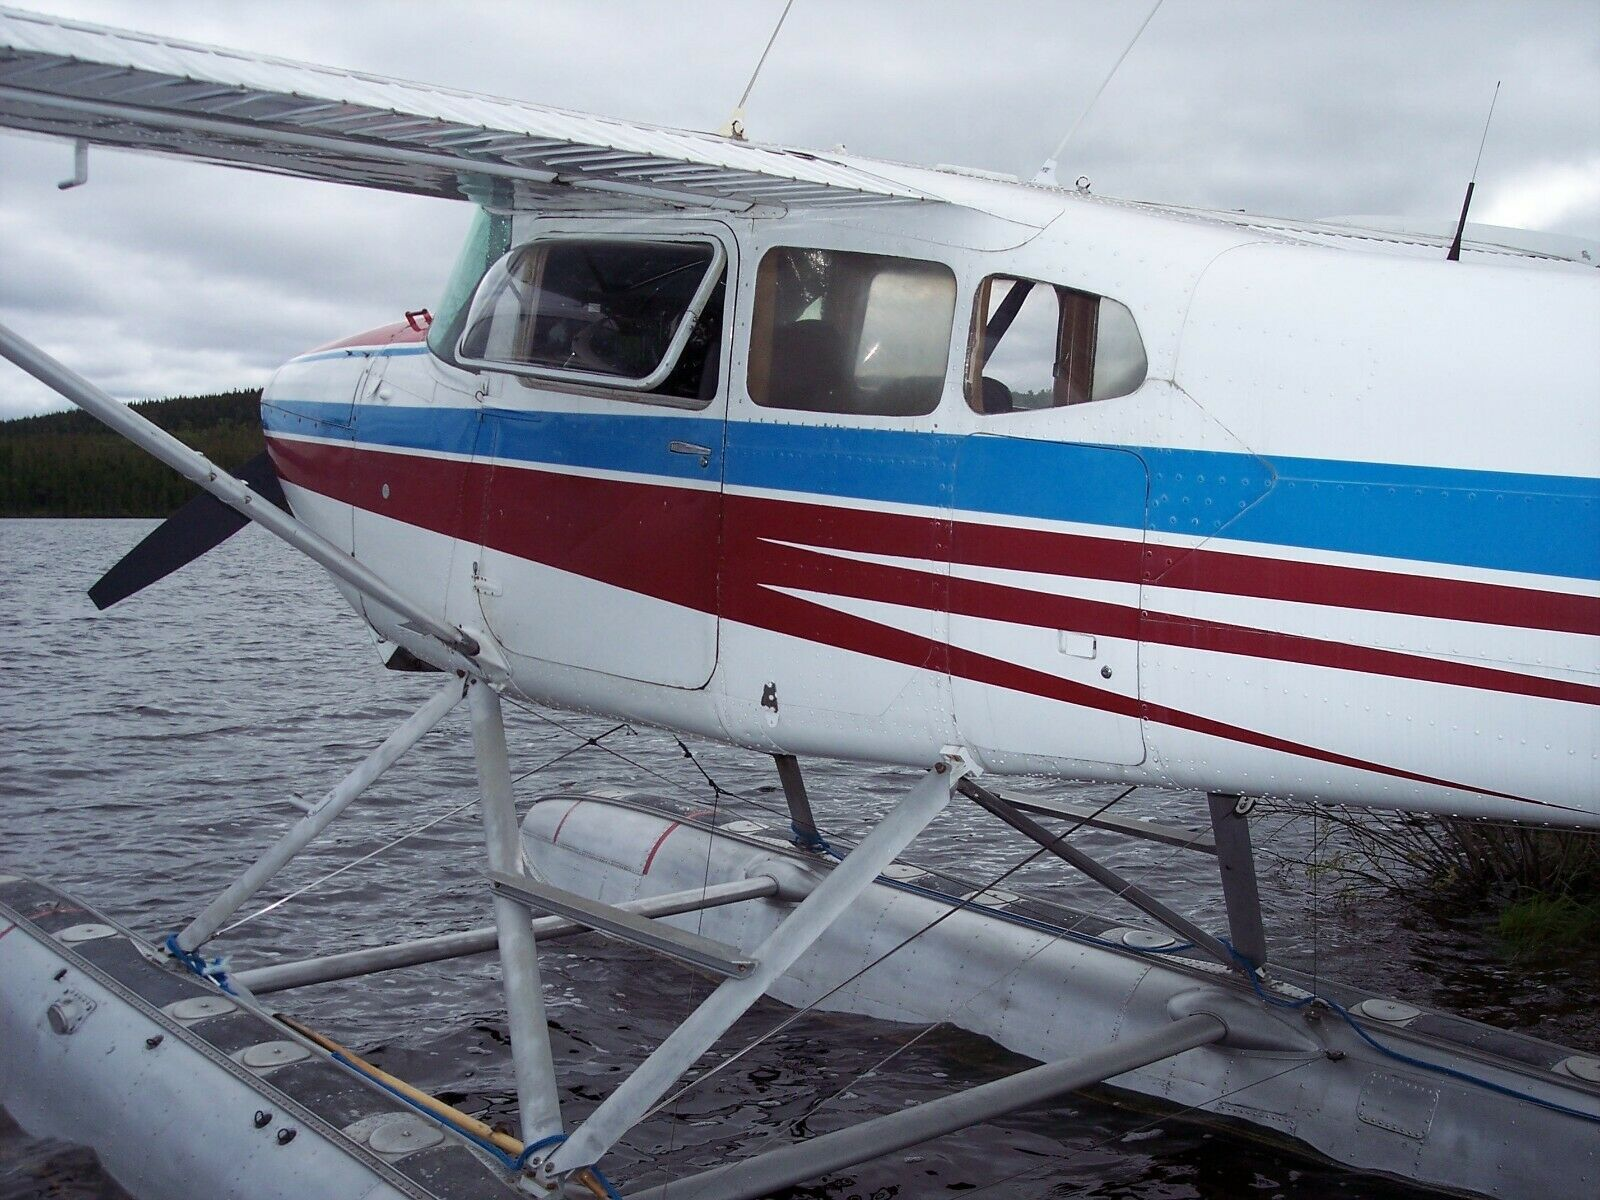 floats equipped 1972 Cessna 180 aircraft